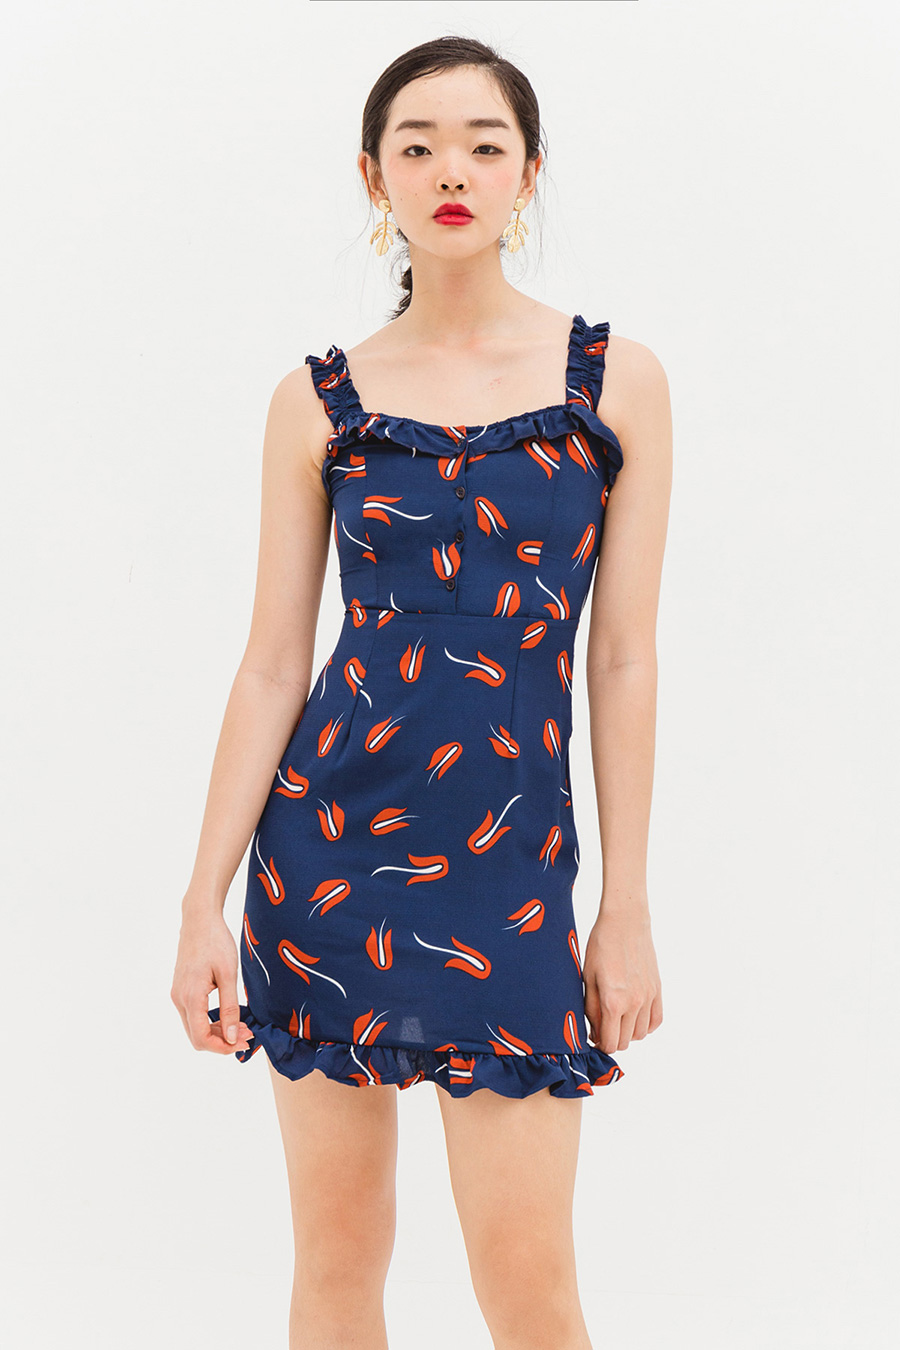 MATEO DRESS - NAVY TULIP